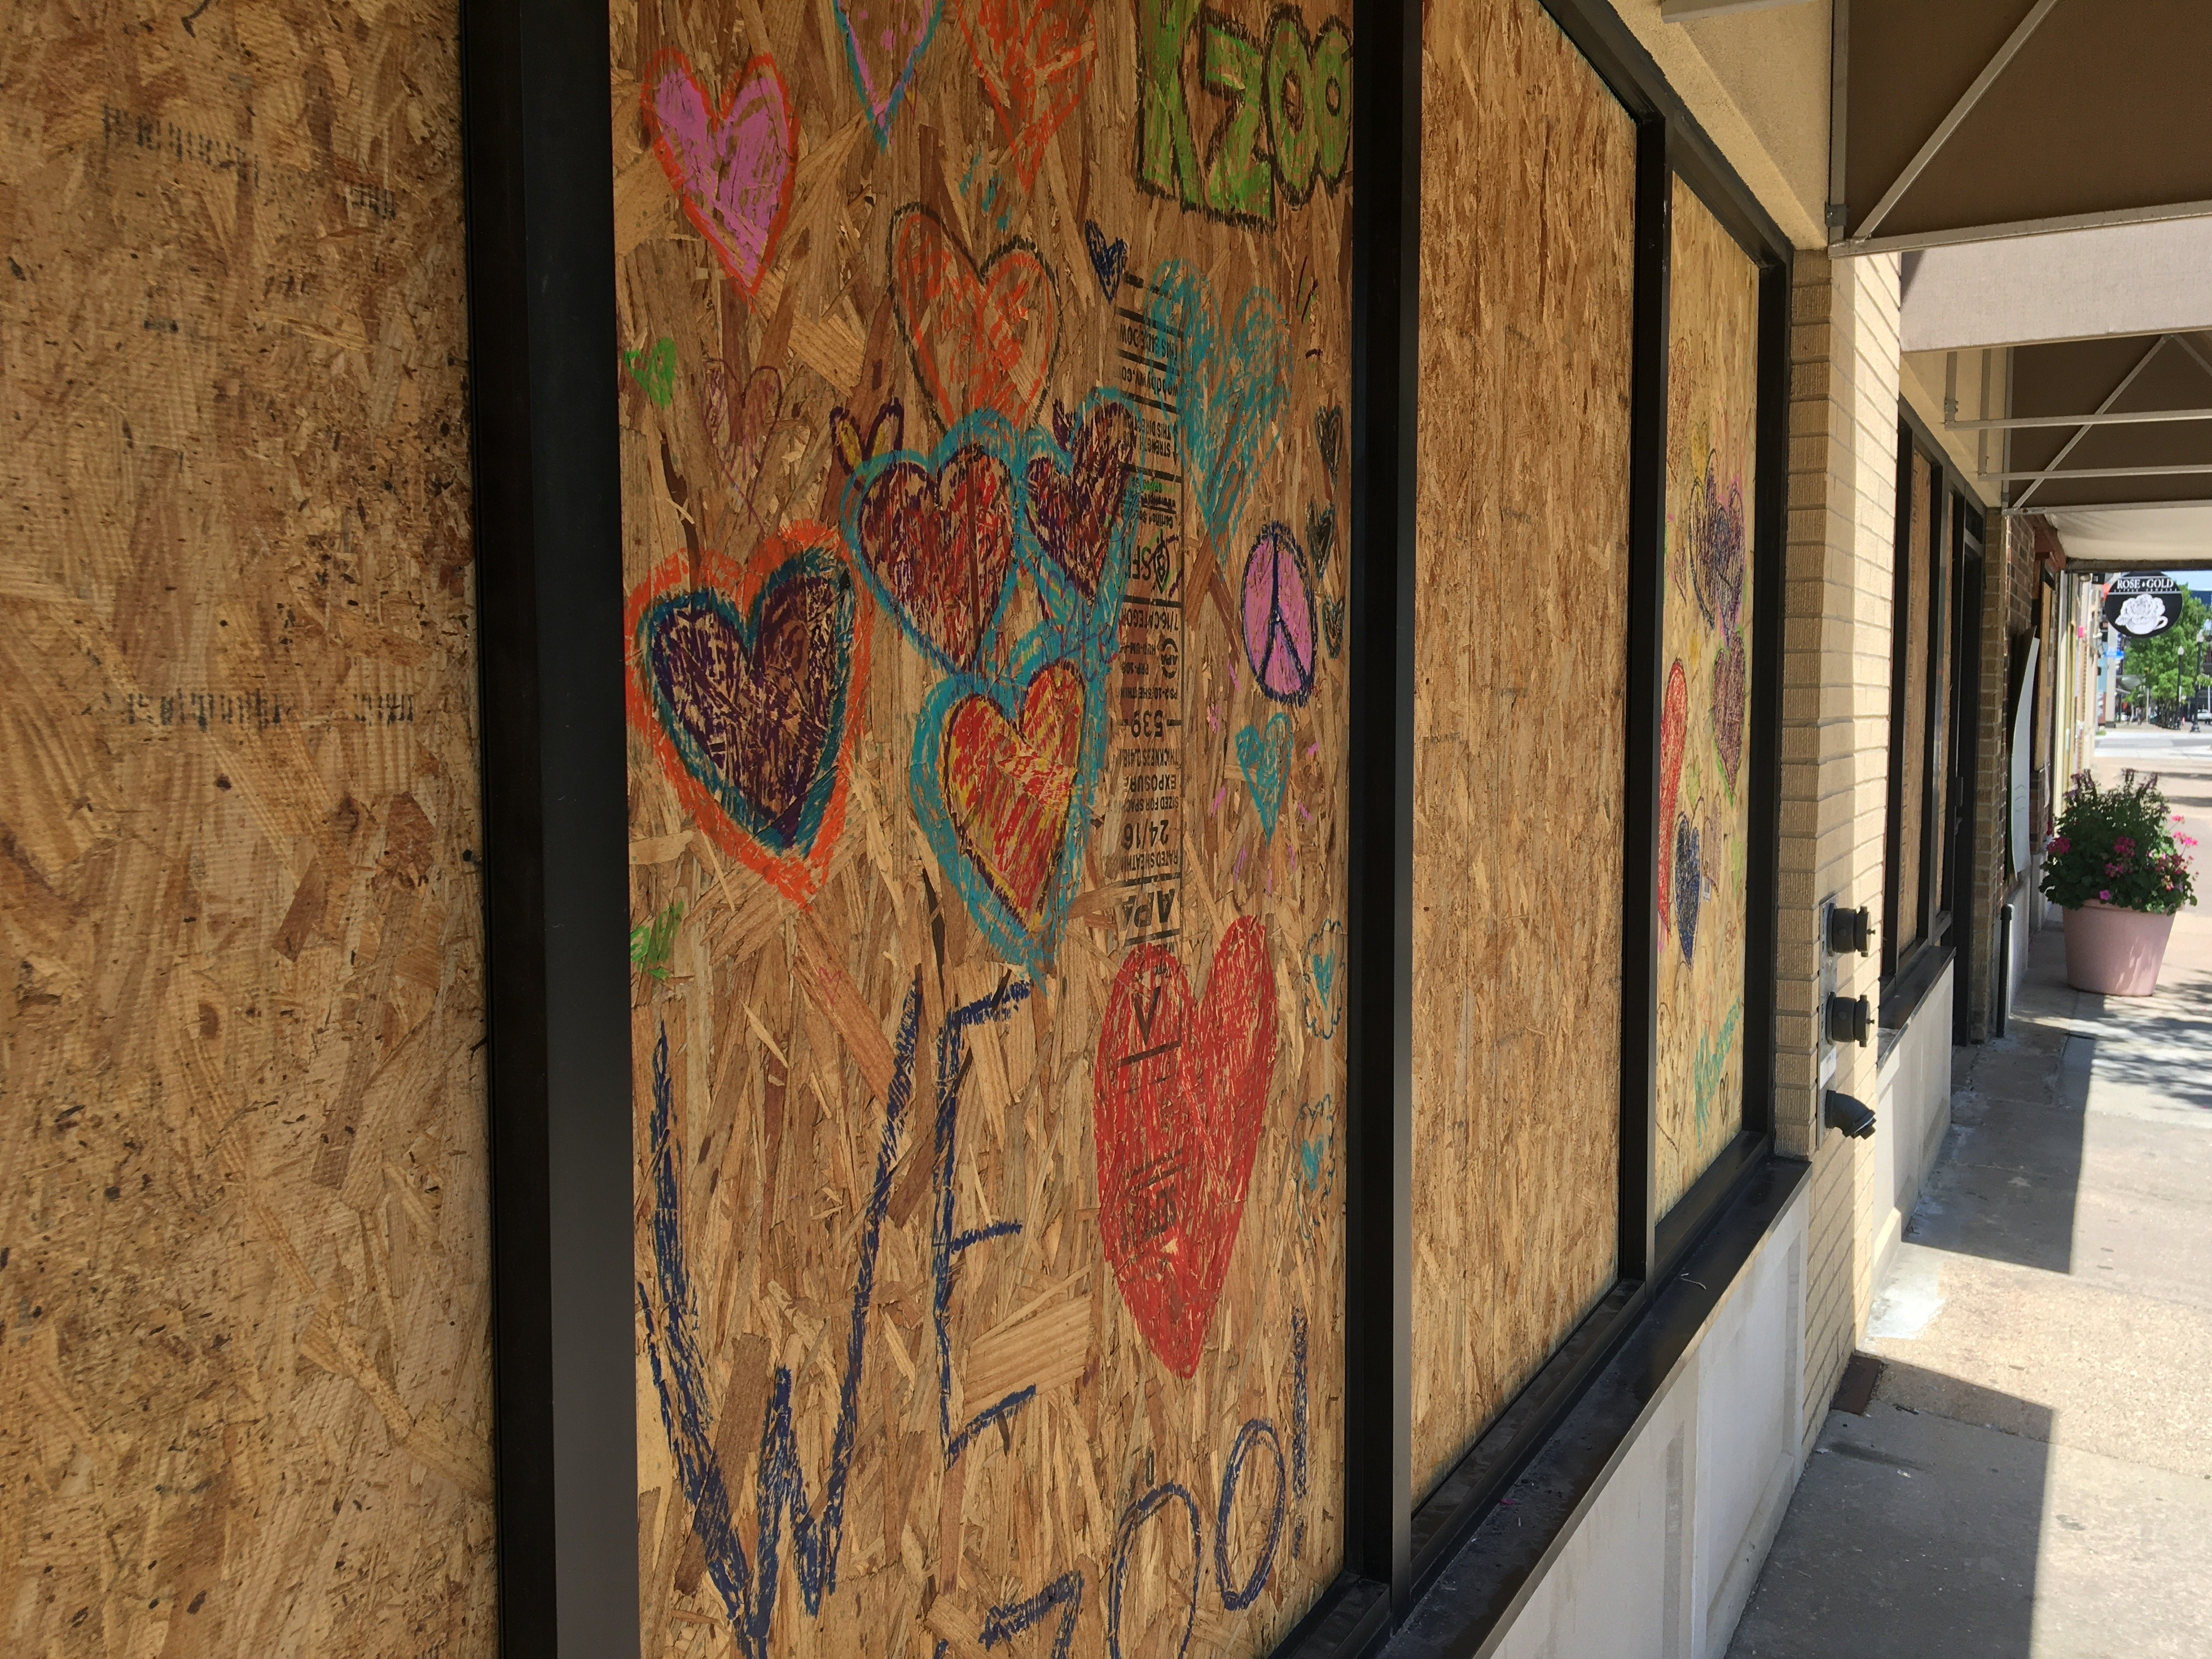 A couple business owners get creative with the boards being used to cover, and protect windows and doors Tuesday, June 2, 2020, as Kalamazoo prepares for an expected second night of looting and vandalism. (WWMT/Manny Revilla)